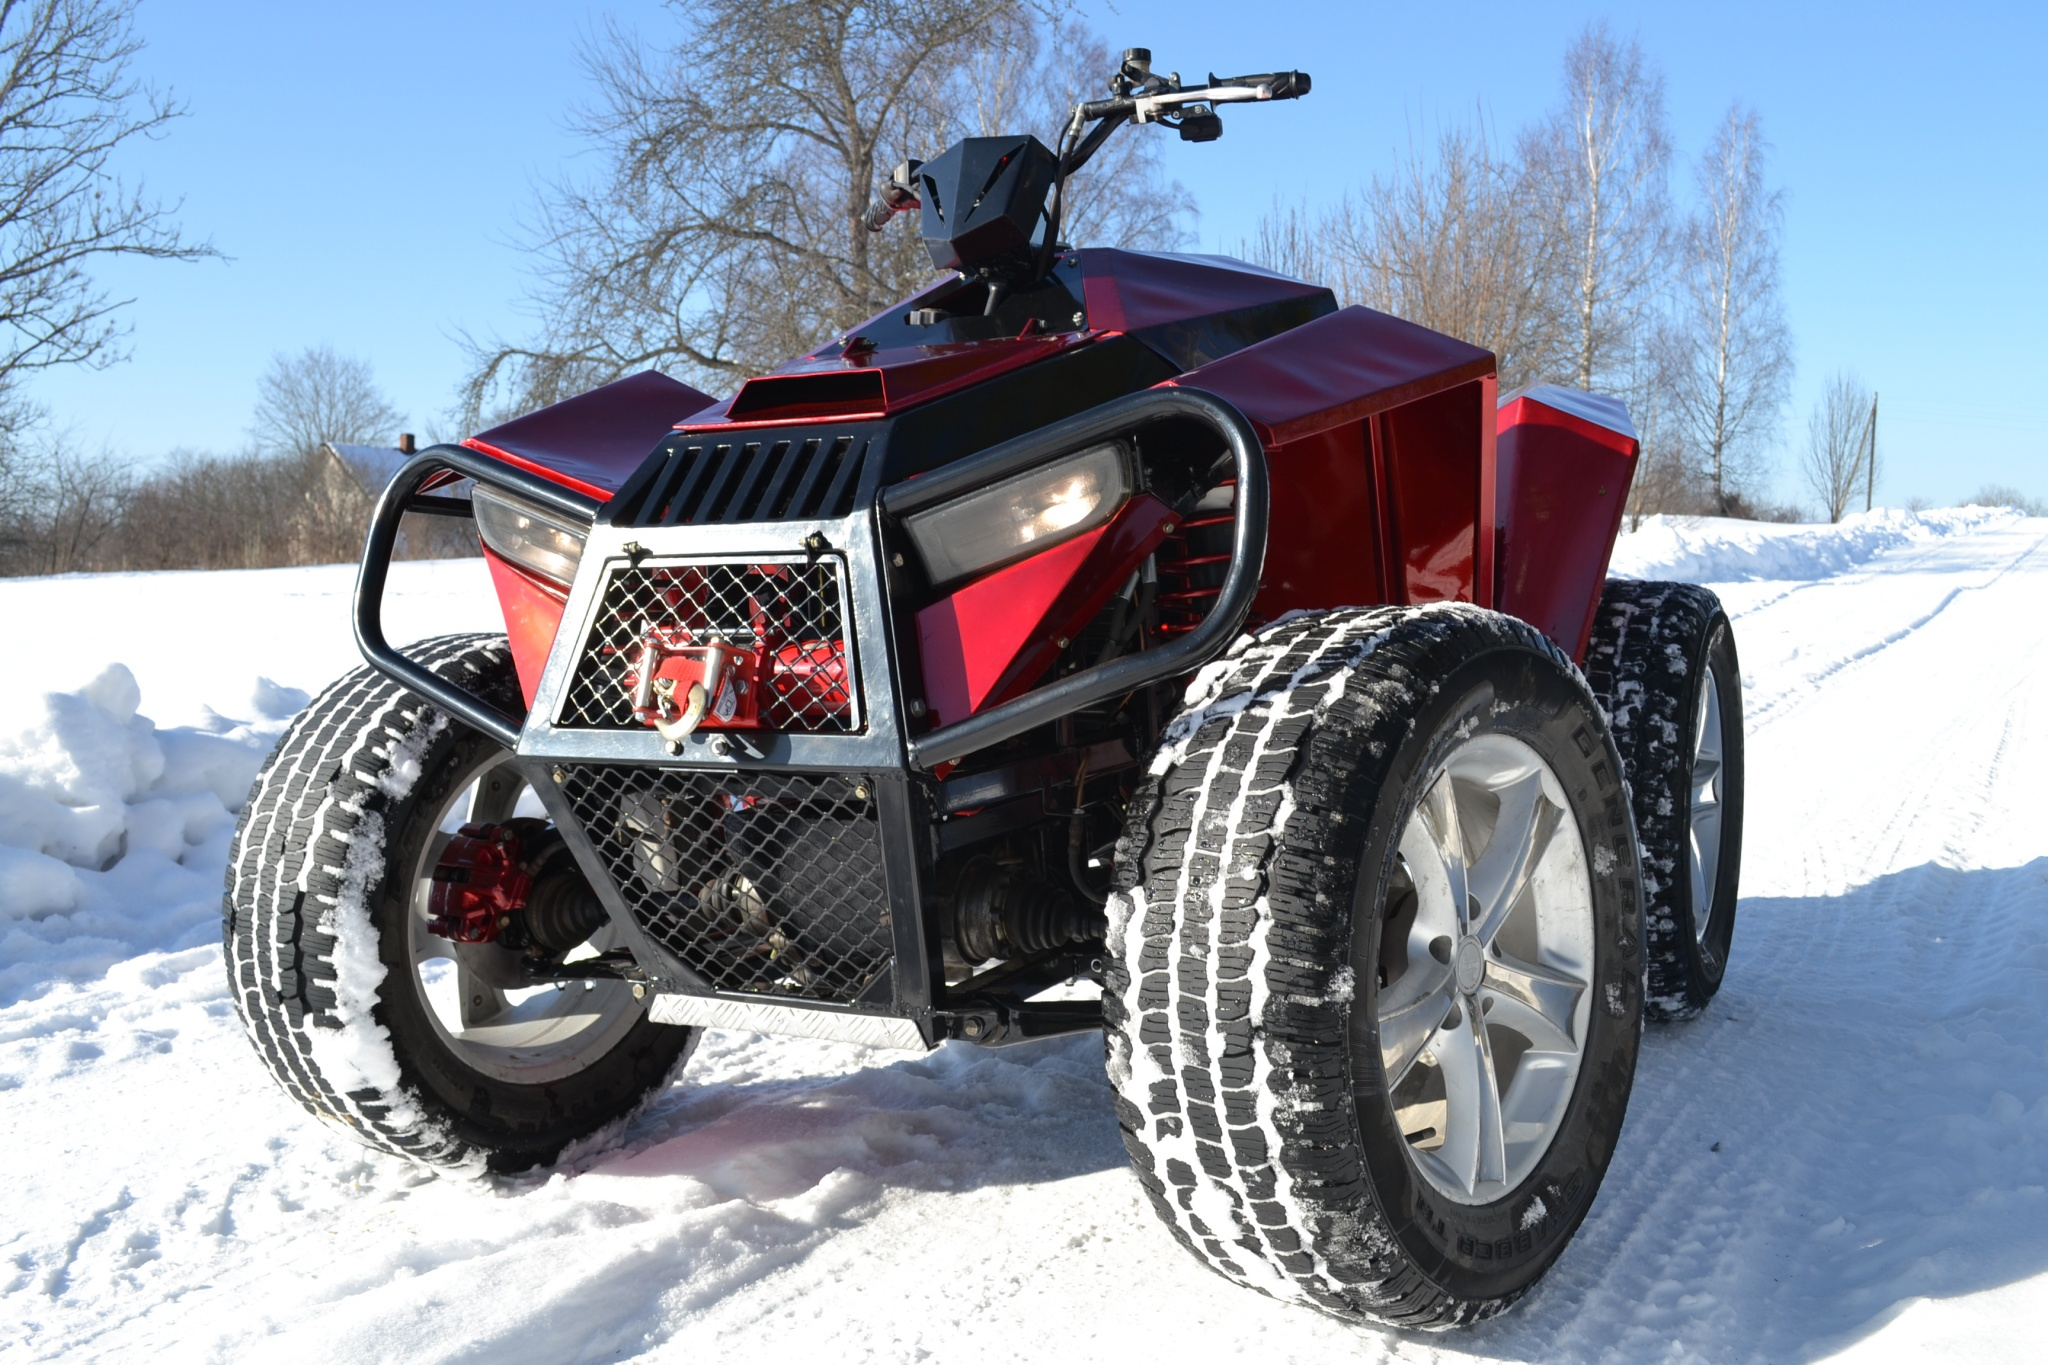 Home made quad with recycled Audi, VW parts - A8 Parts Forum